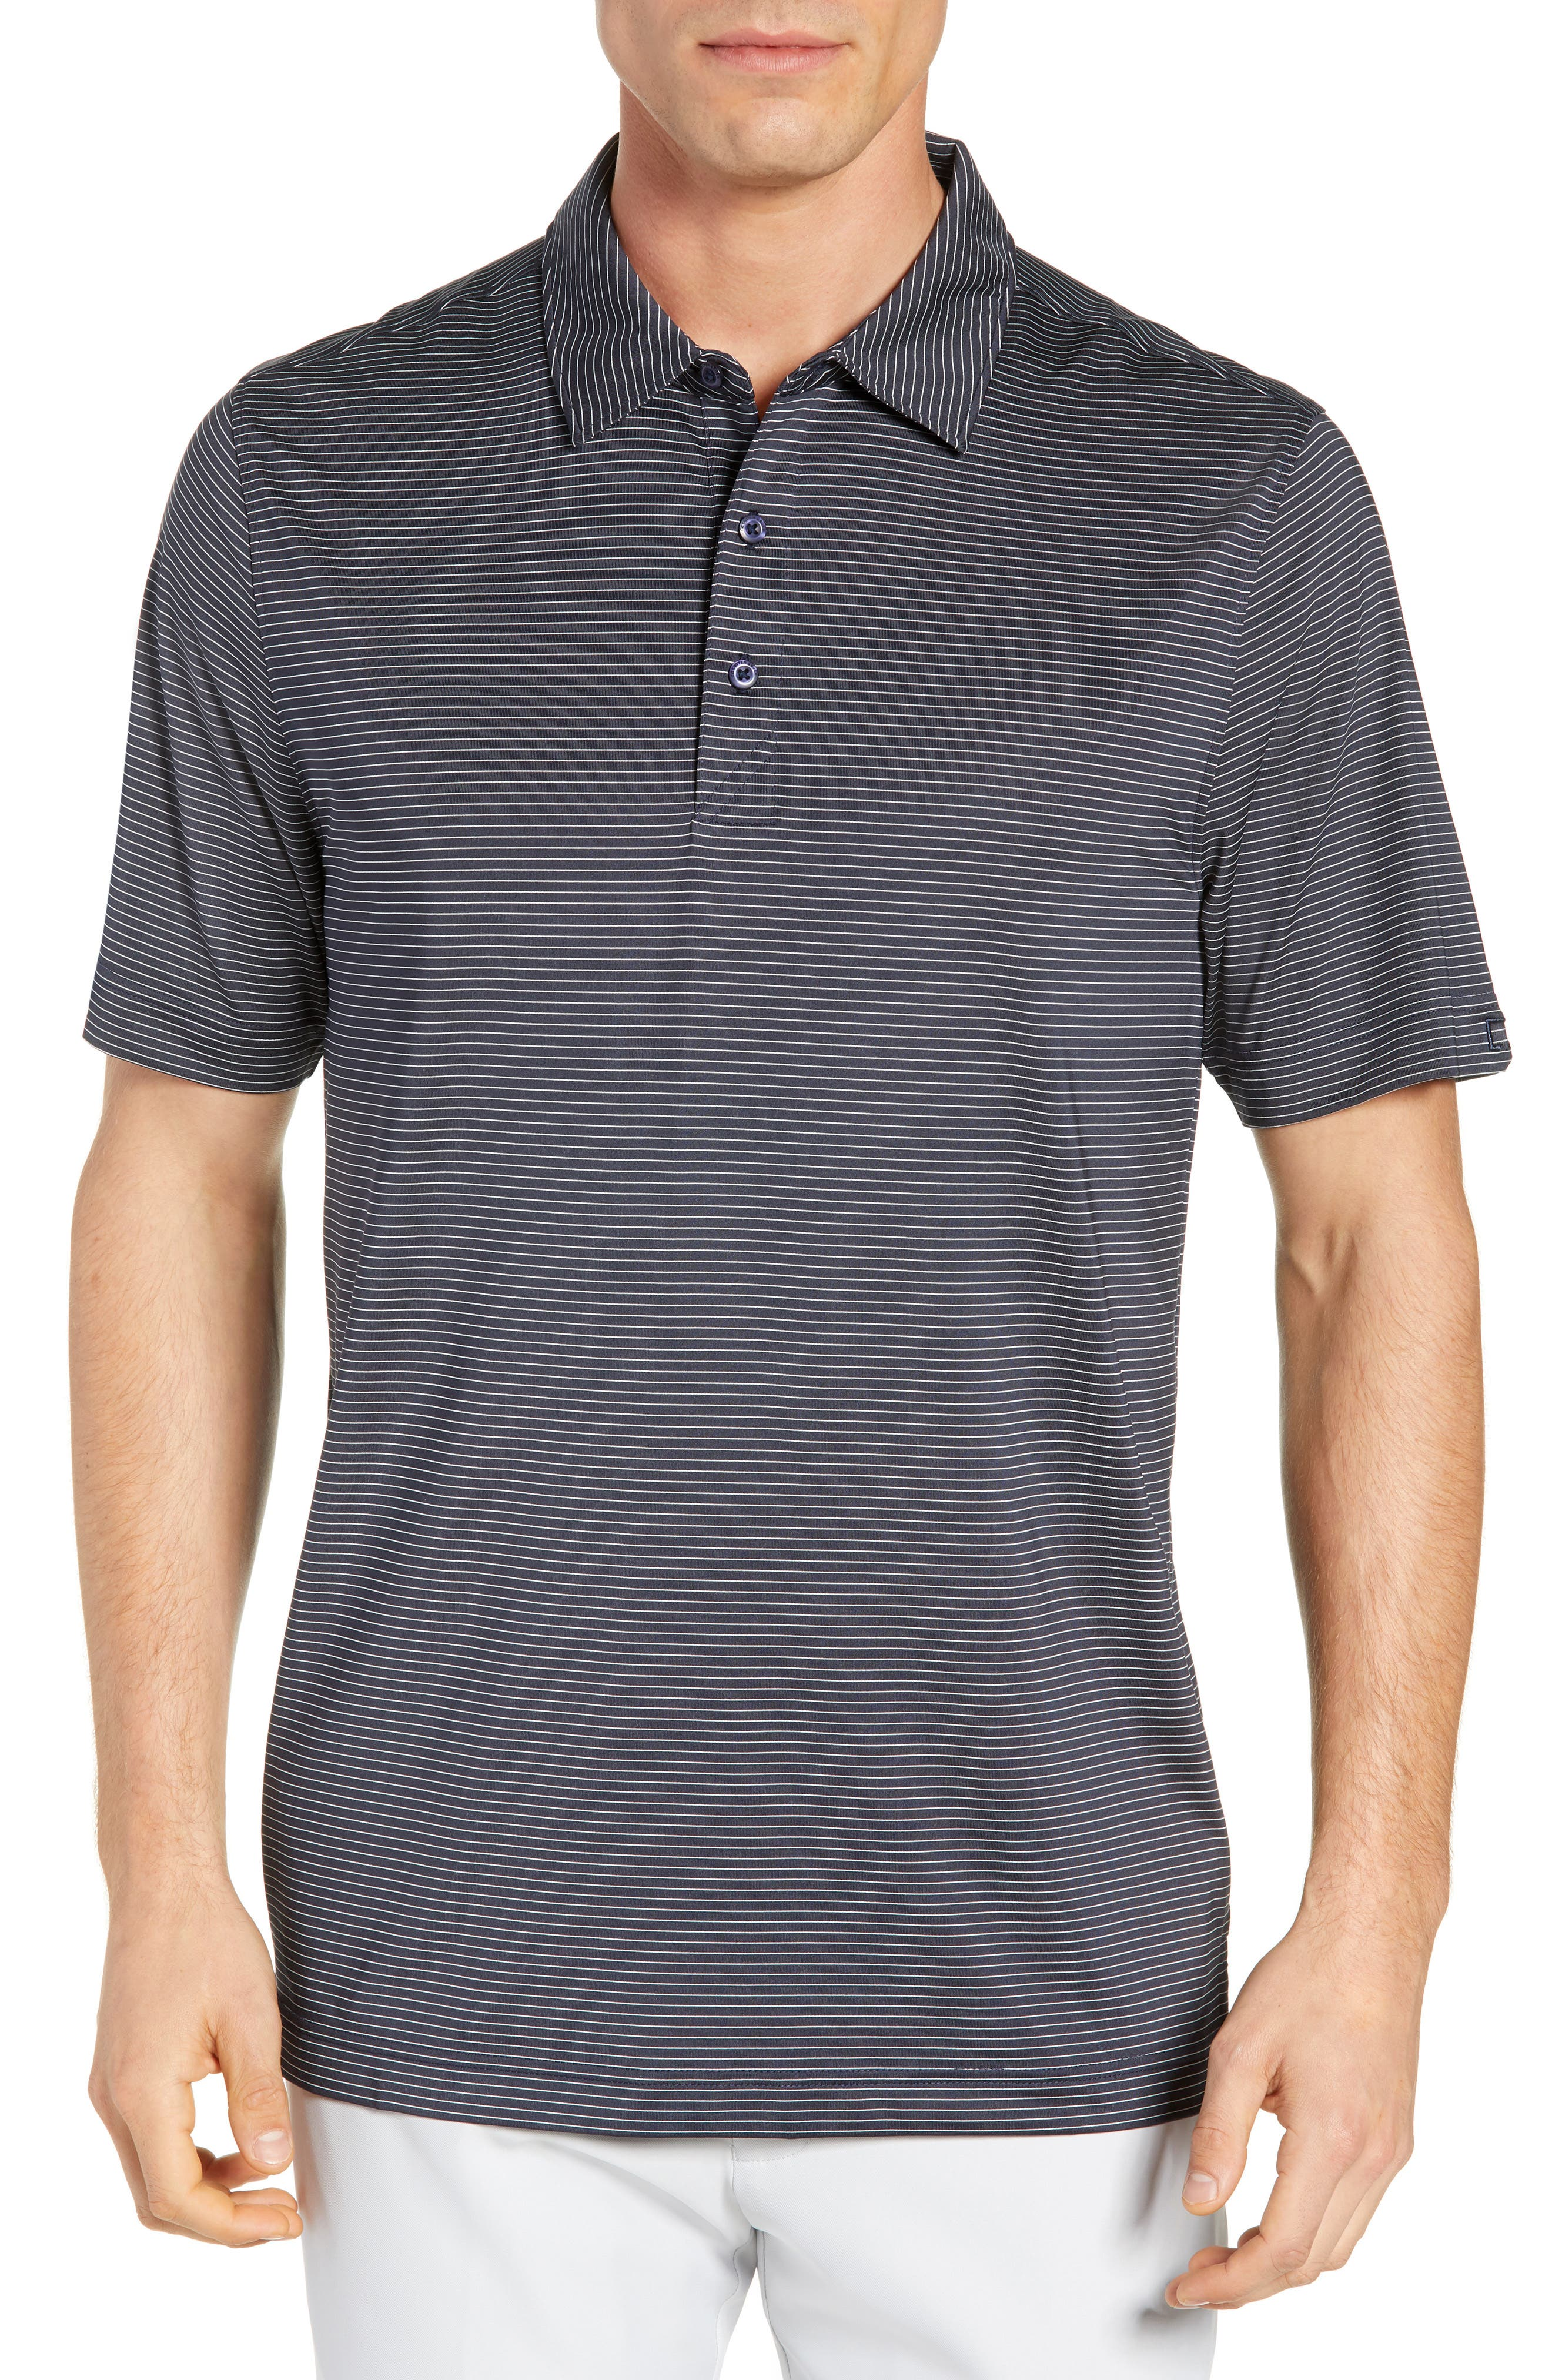 CUTTER & BUCK,                             Prevail Regular Fit Stripe Polo,                             Main thumbnail 1, color,                             LIBERTY NAVY